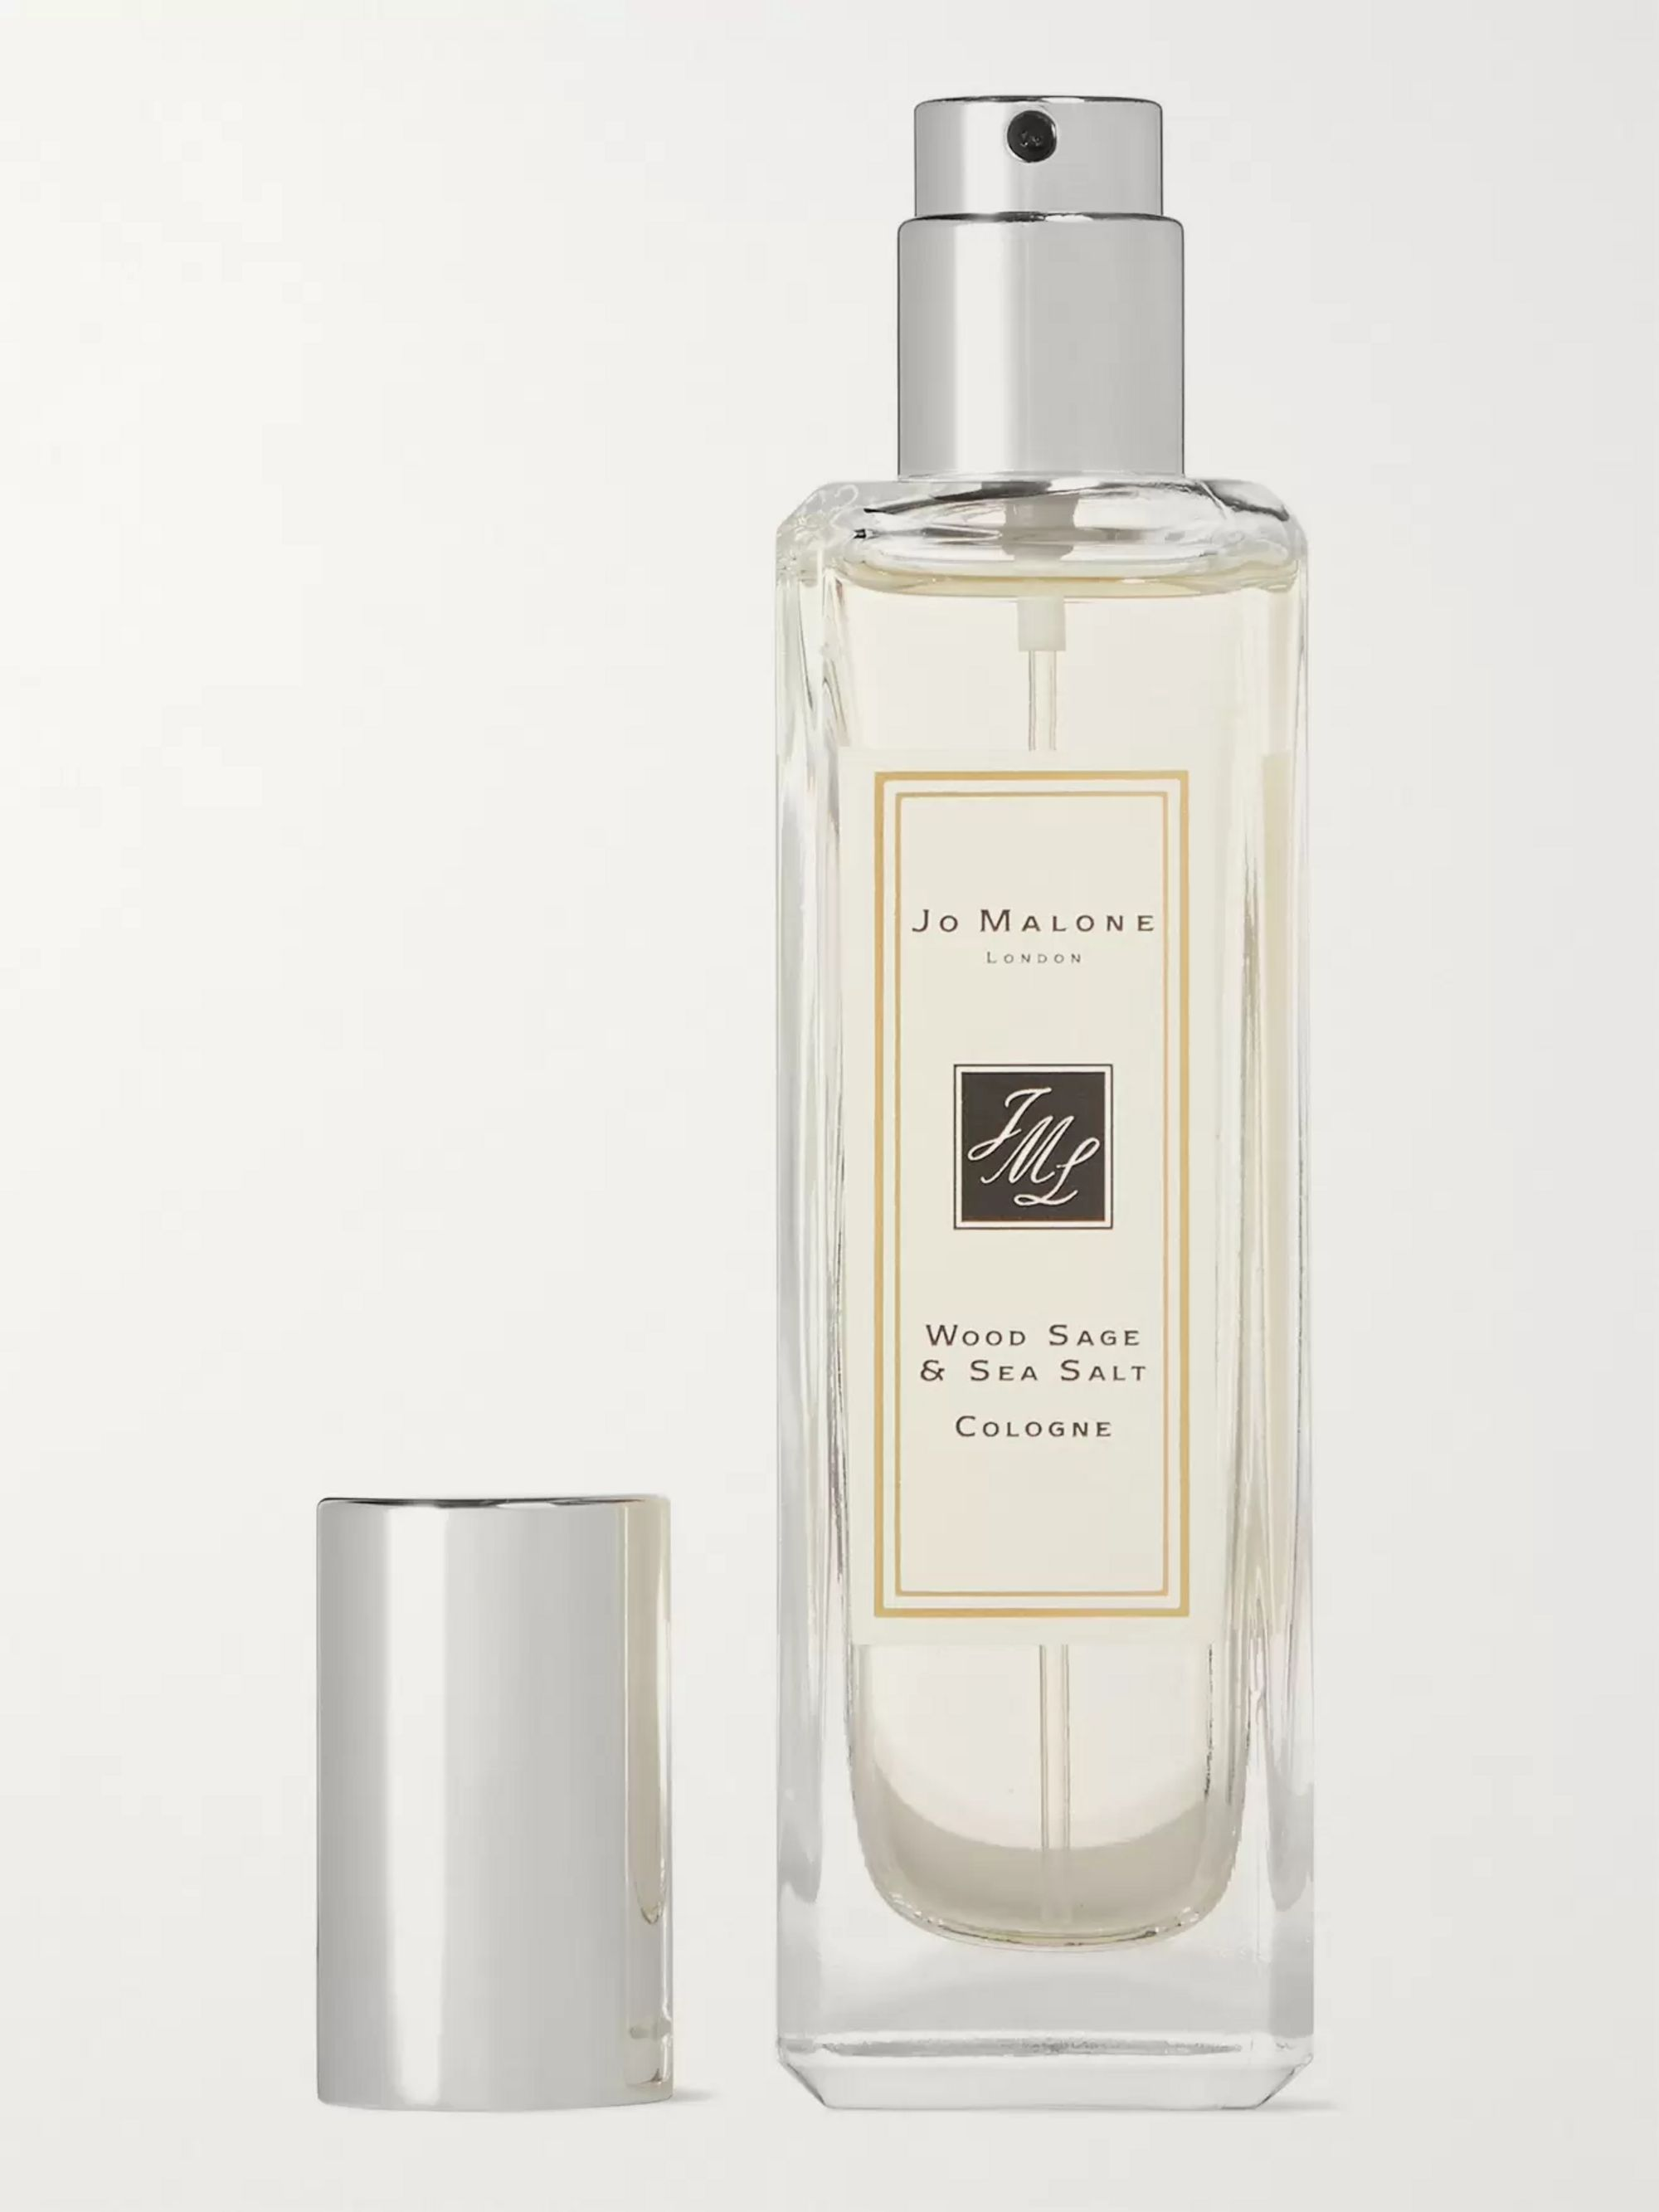 Jo Malone London Wood Sage and Sea Salt Cologne, 30ml